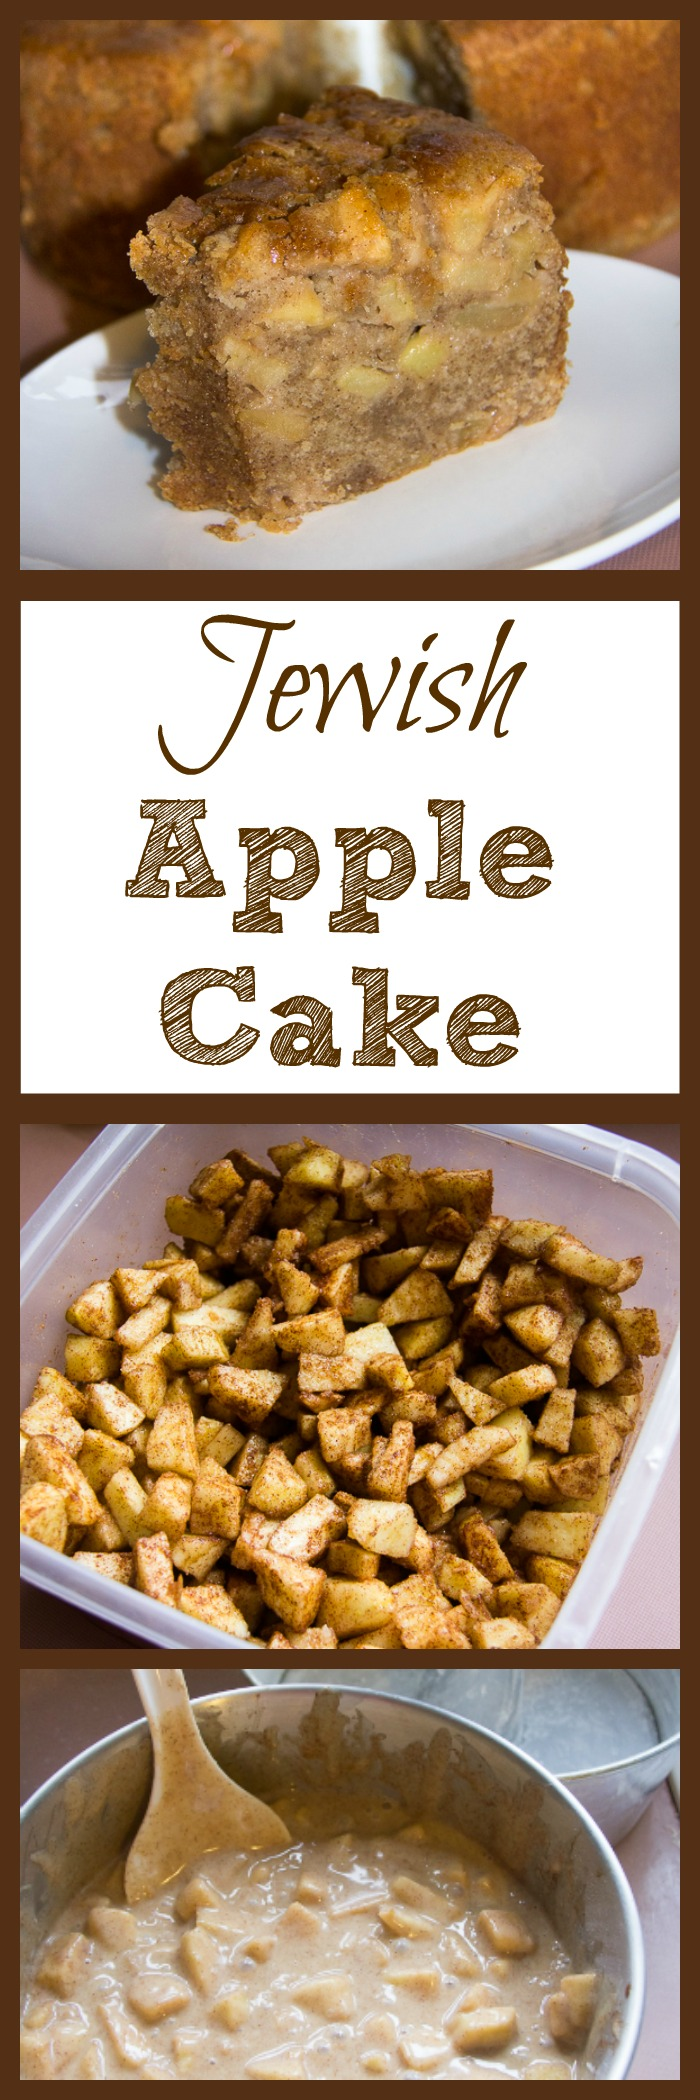 Are you looking for a delicious recipe to use with your apples? Want a tasty twist to a typical apple cake? Jewish apple cake recipe will do the trick.